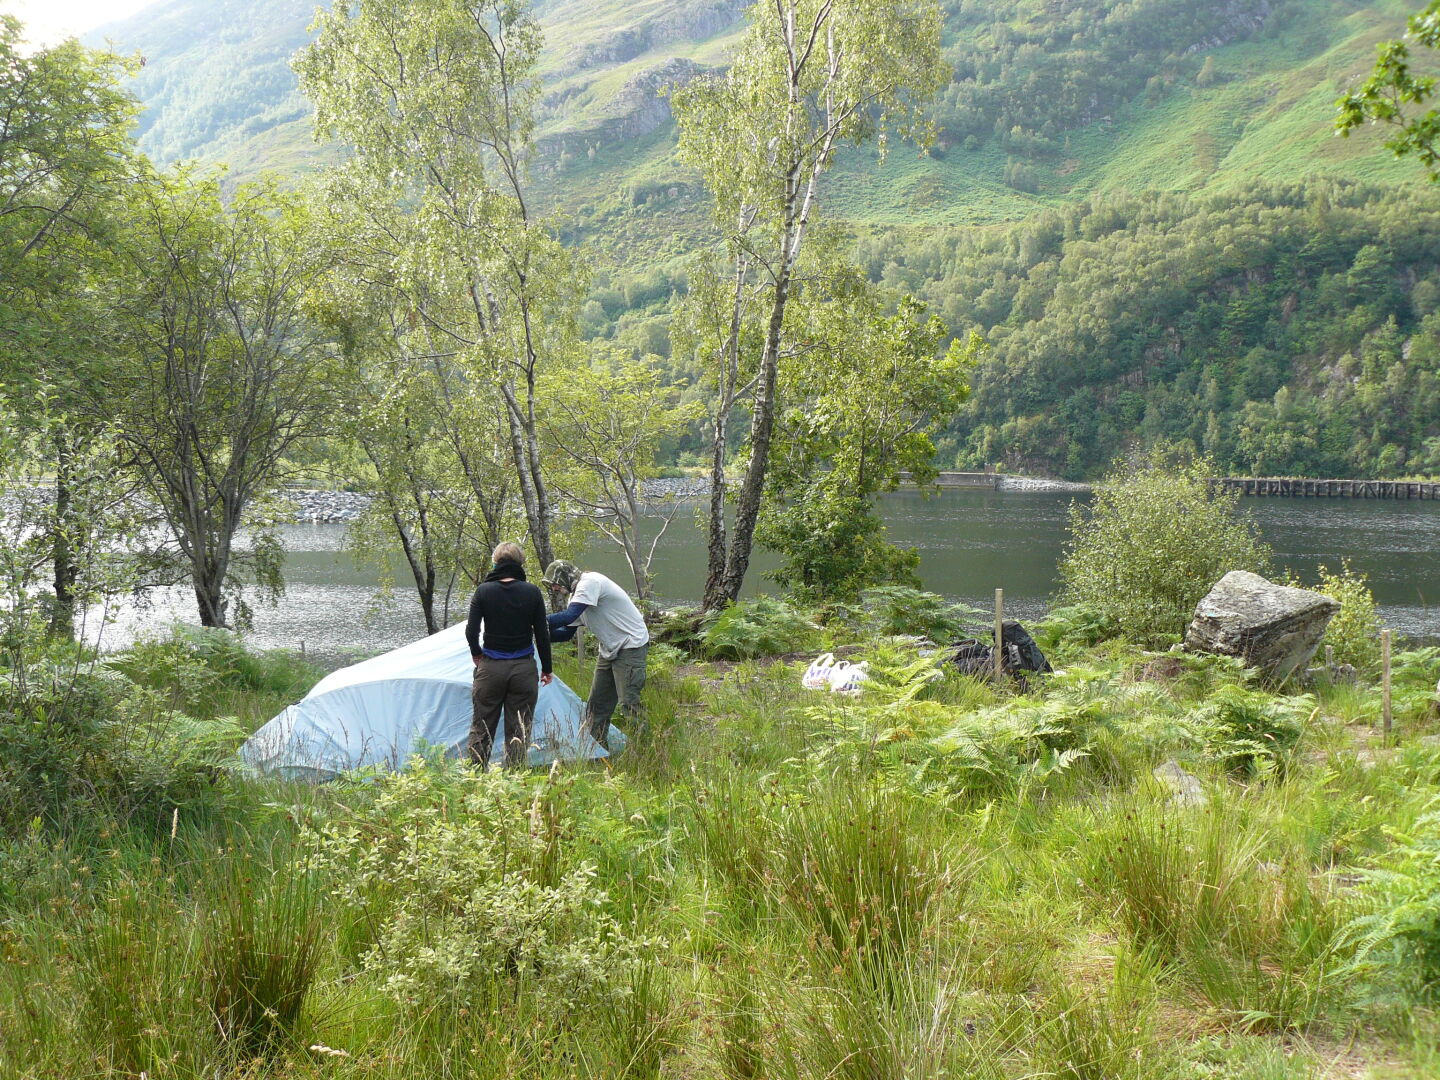 Campsite near Kinlochleven. The fire is supposed to keep the midges away, but I guess they do not know about this. Right photo (c) James Mellors